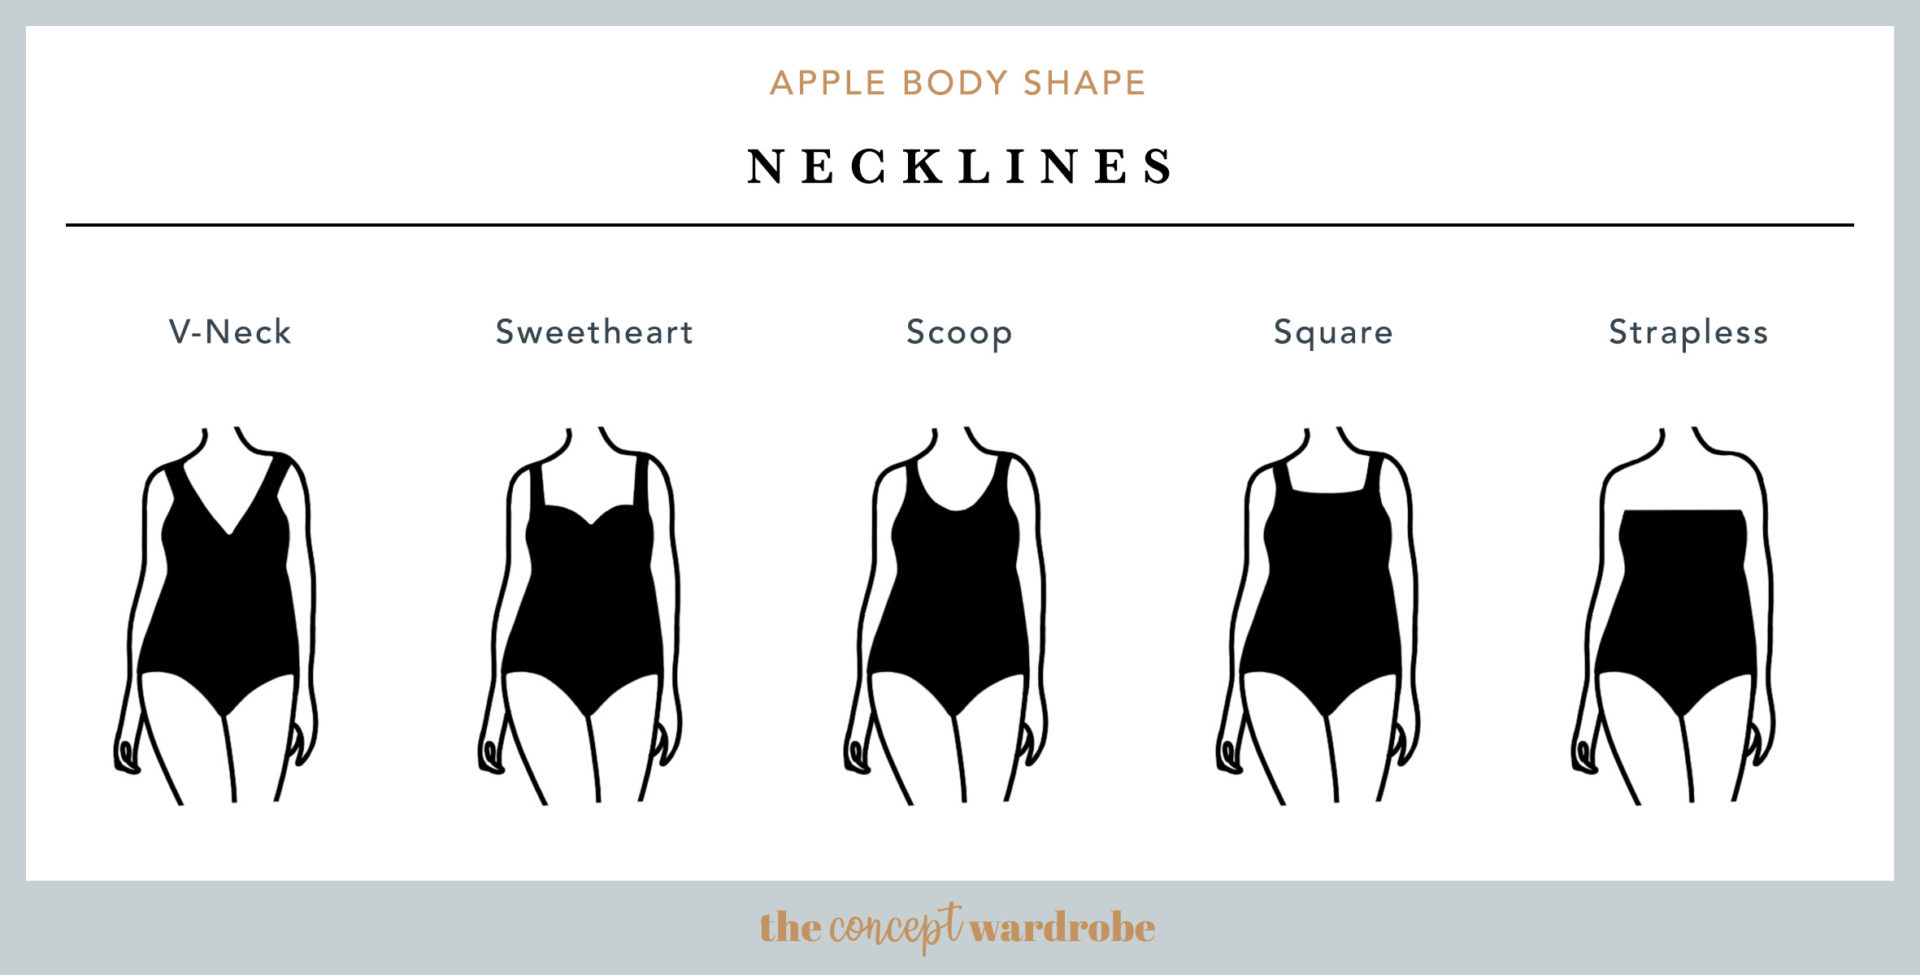 Apple Body Shape Necklines - the concept wardrobe